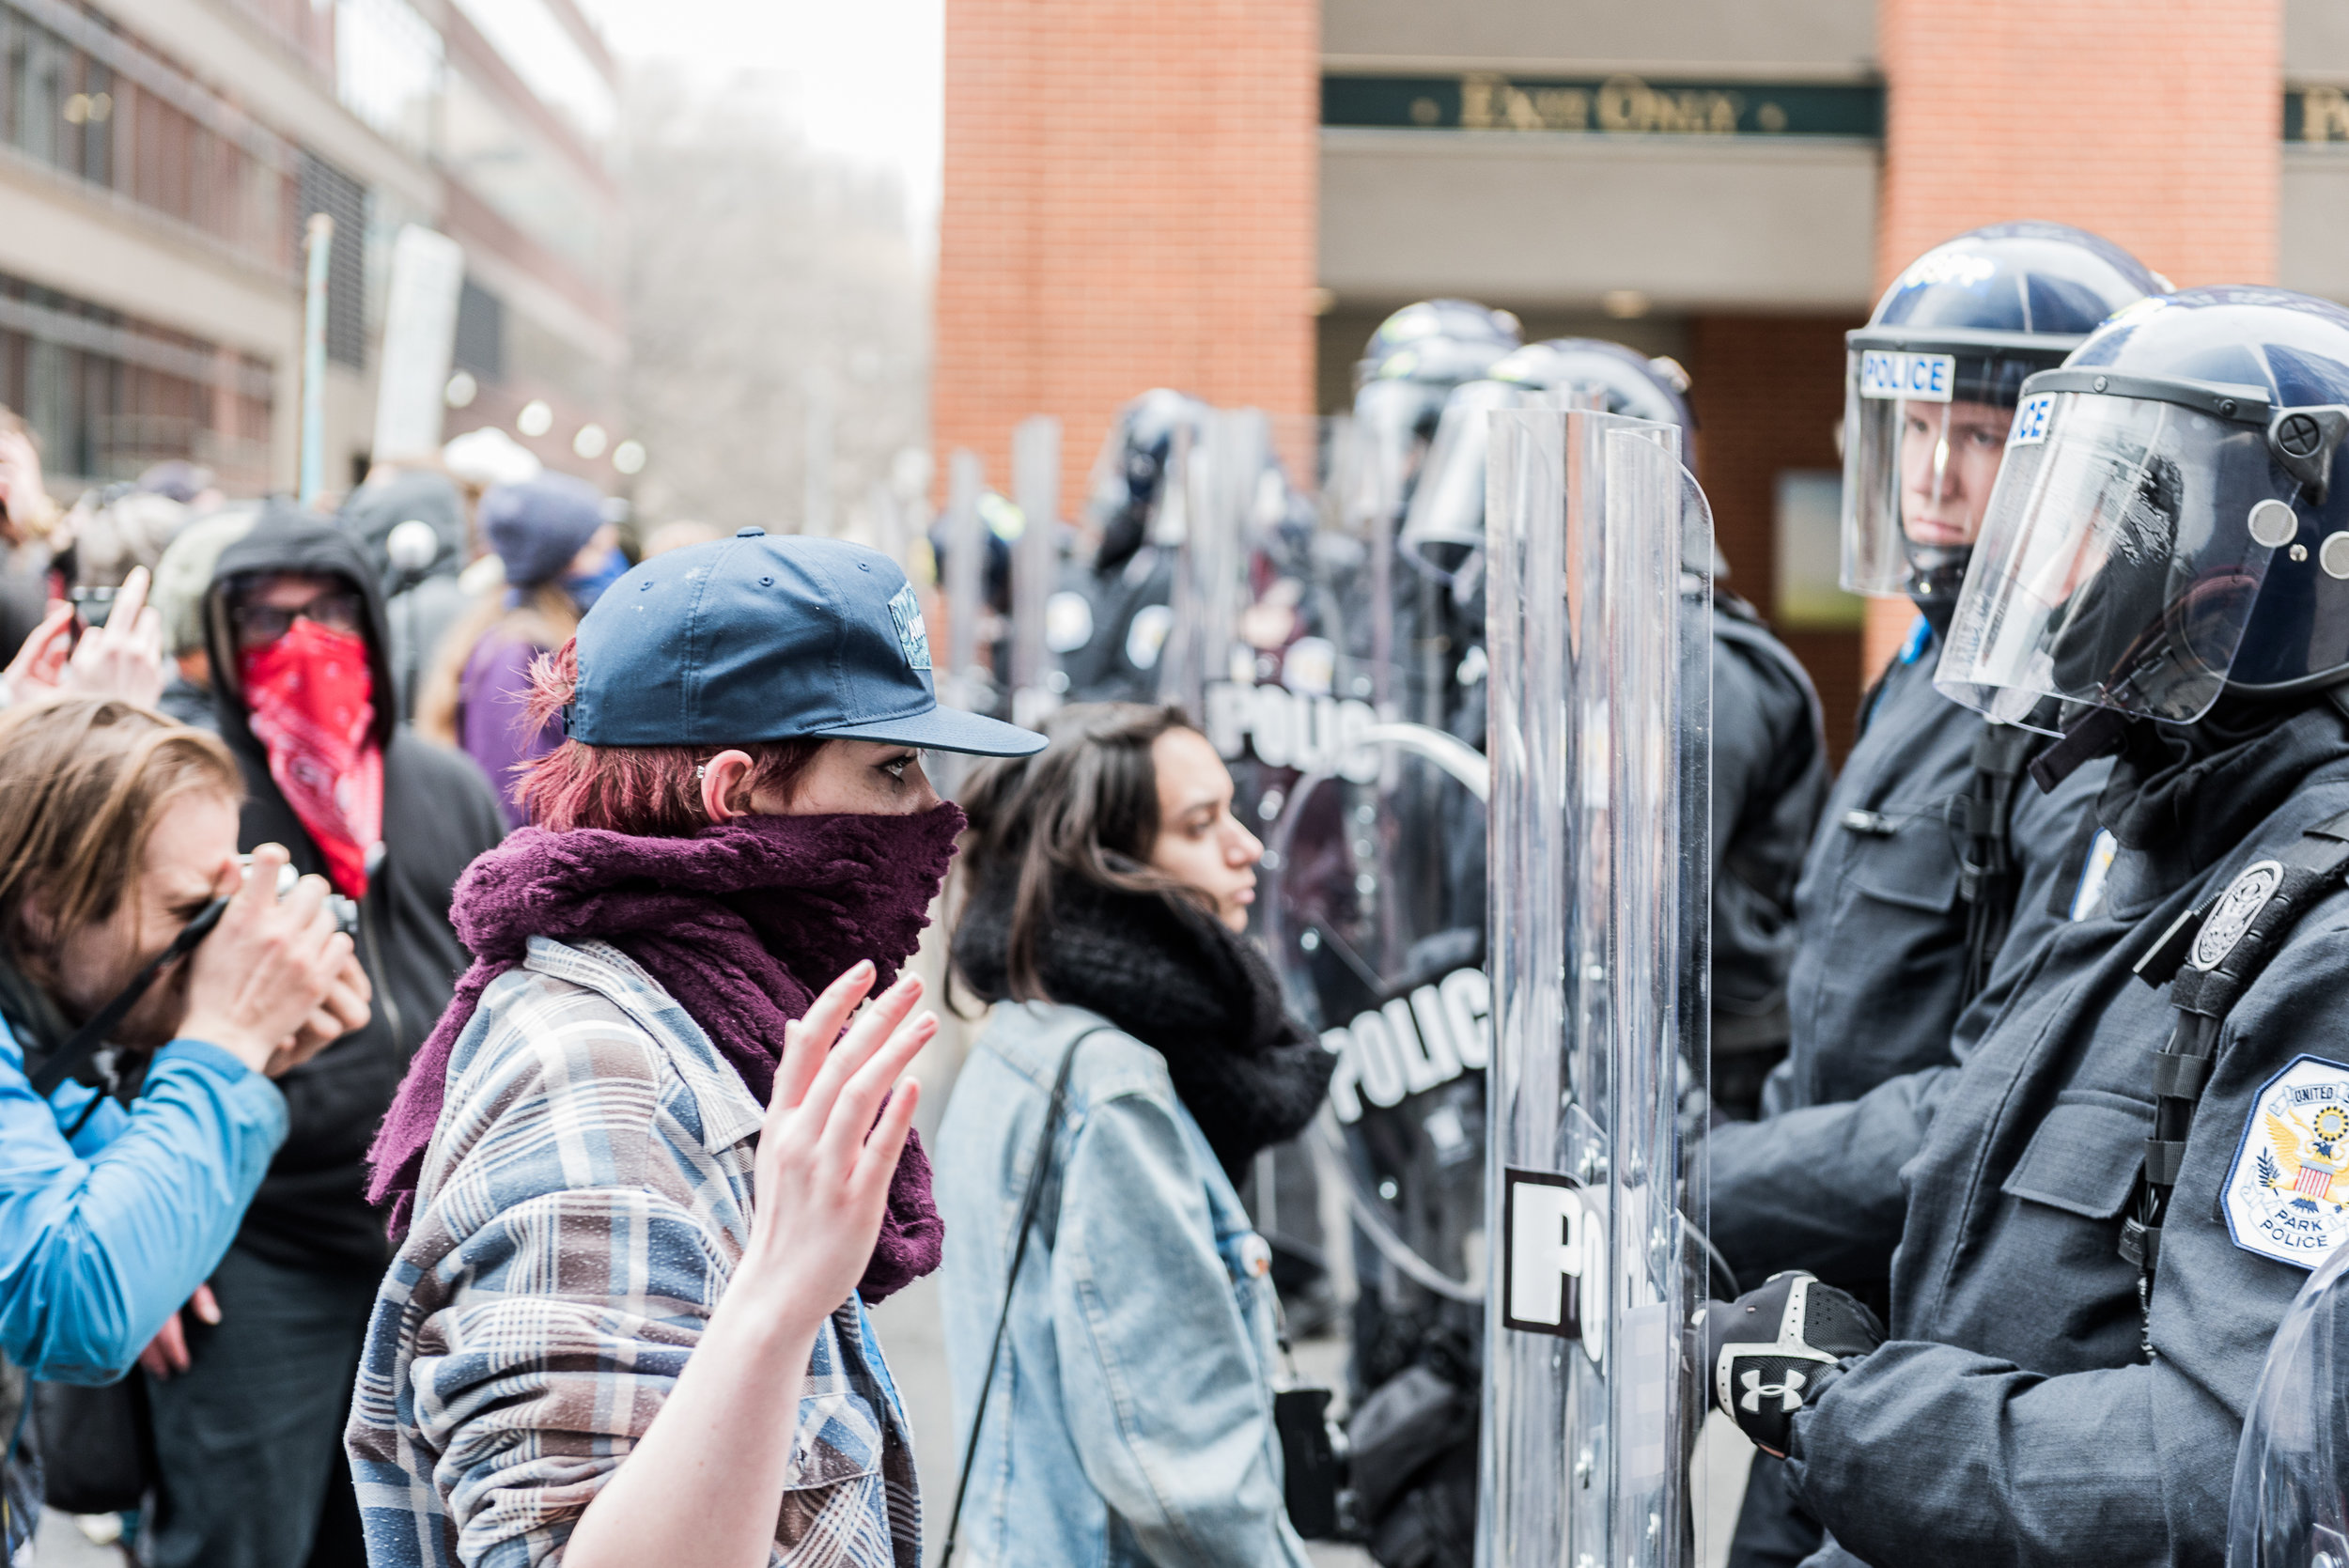 A protester stares down a police officer in riot gear on 12th Street, Friday, January 20, 2017.